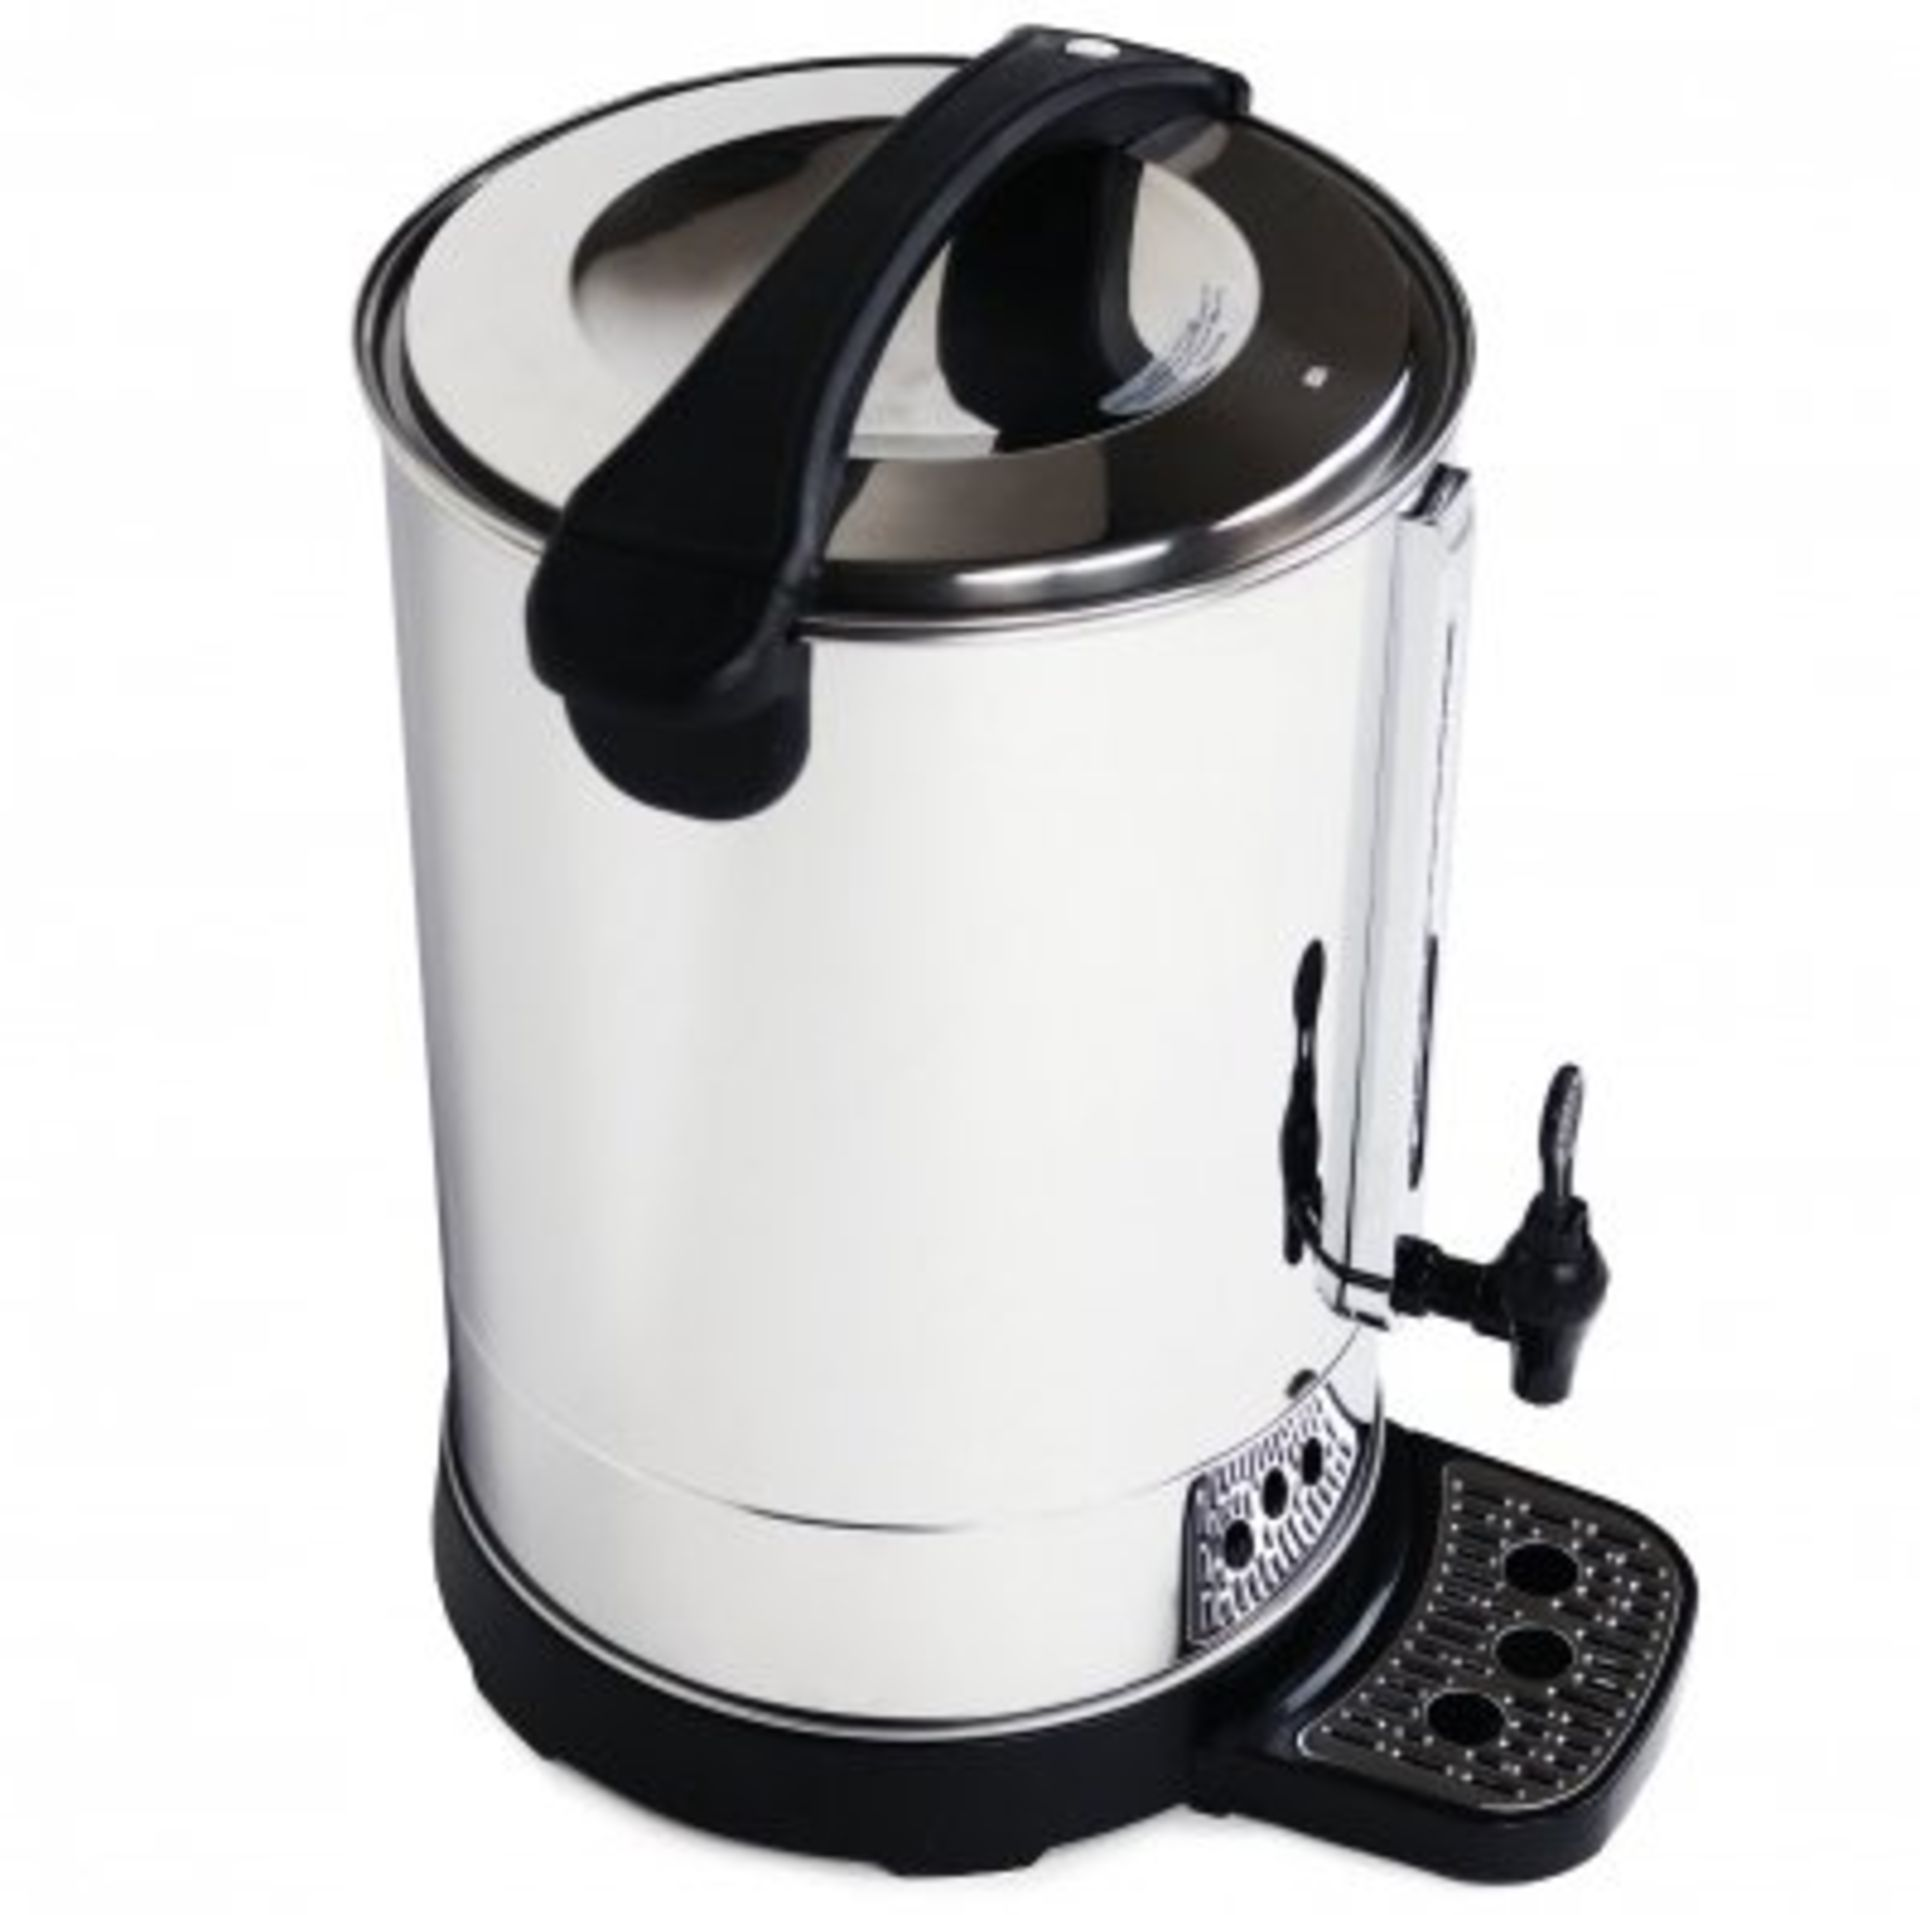 Lot 21 - (RU14) 20L Catering Hot Water Boiler Tea Urn Coffee Manufactured from robust stainless steel...